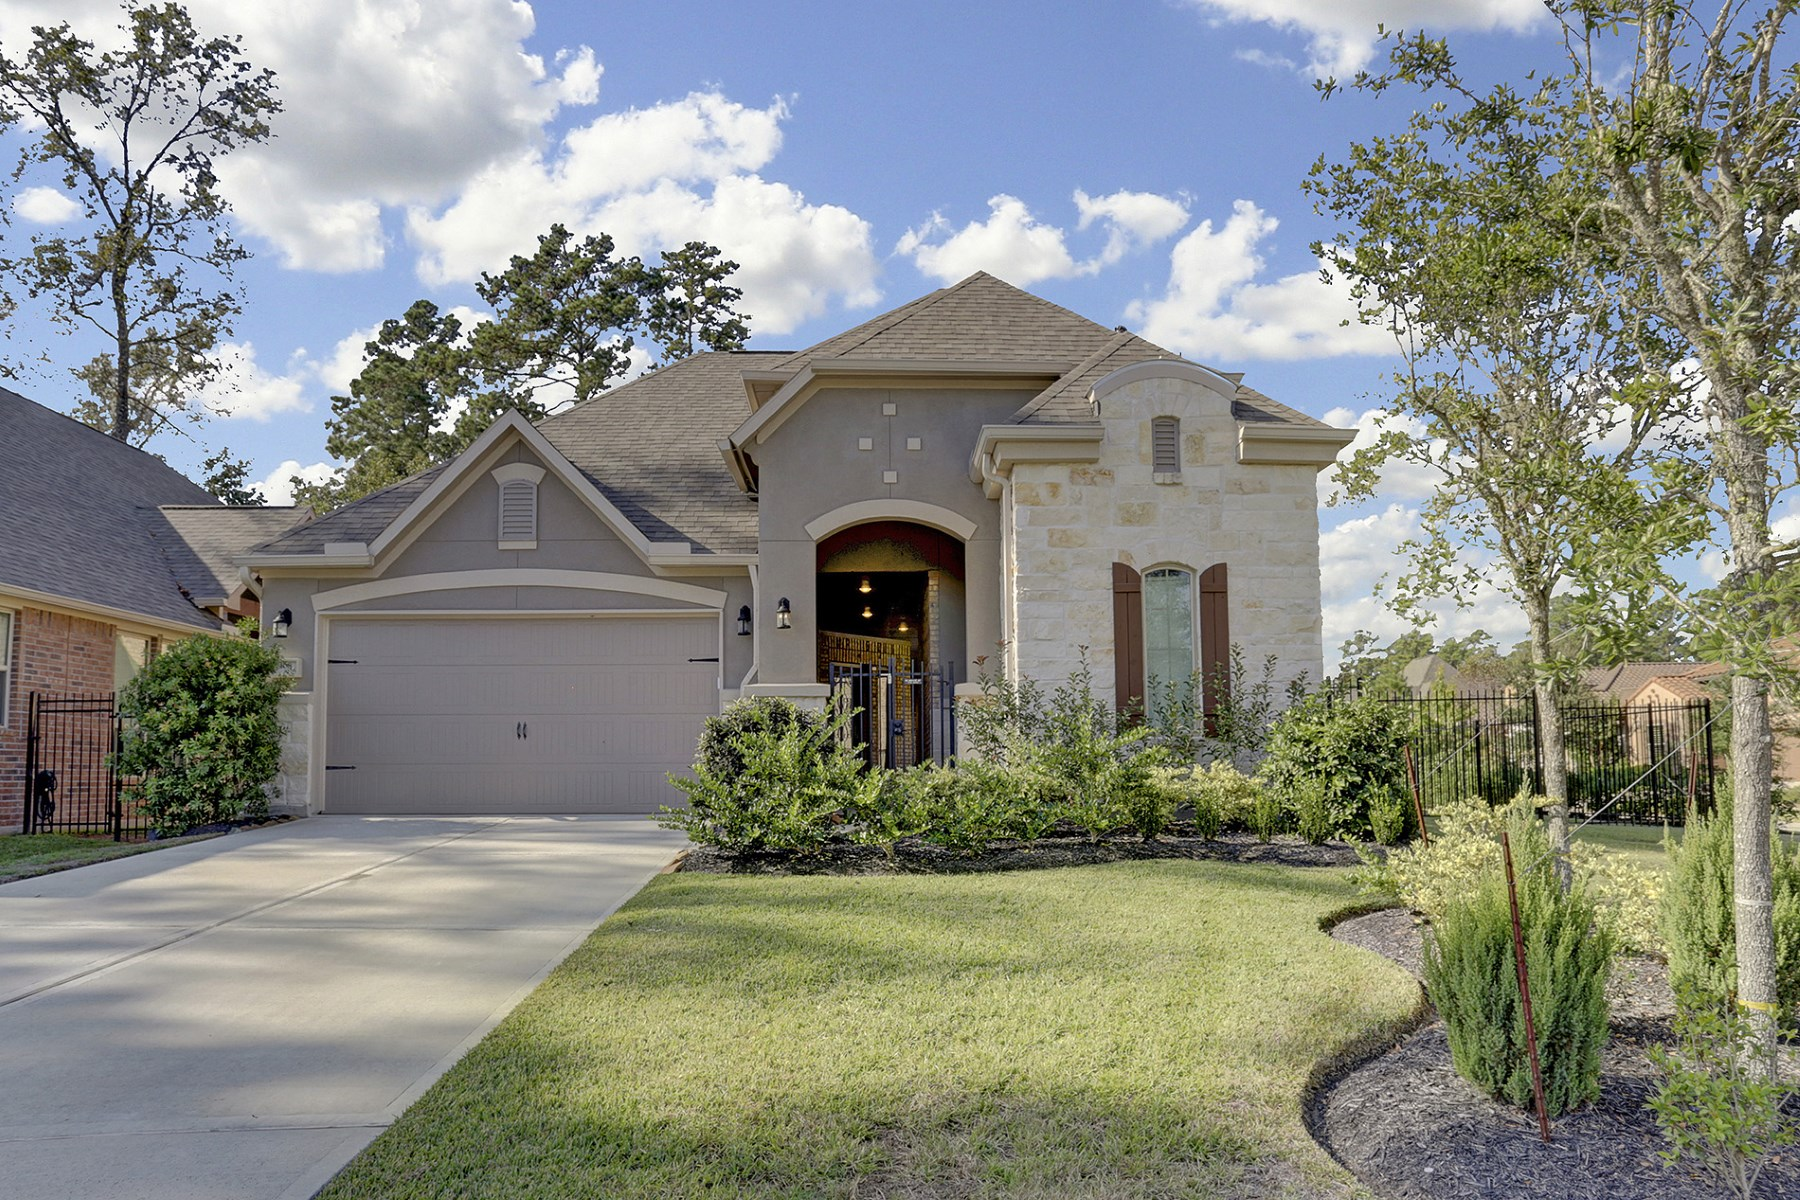 Casa Unifamiliar por un Venta en 108 Sundown Ridge Place Tomball, Texas 77375 Estados Unidos